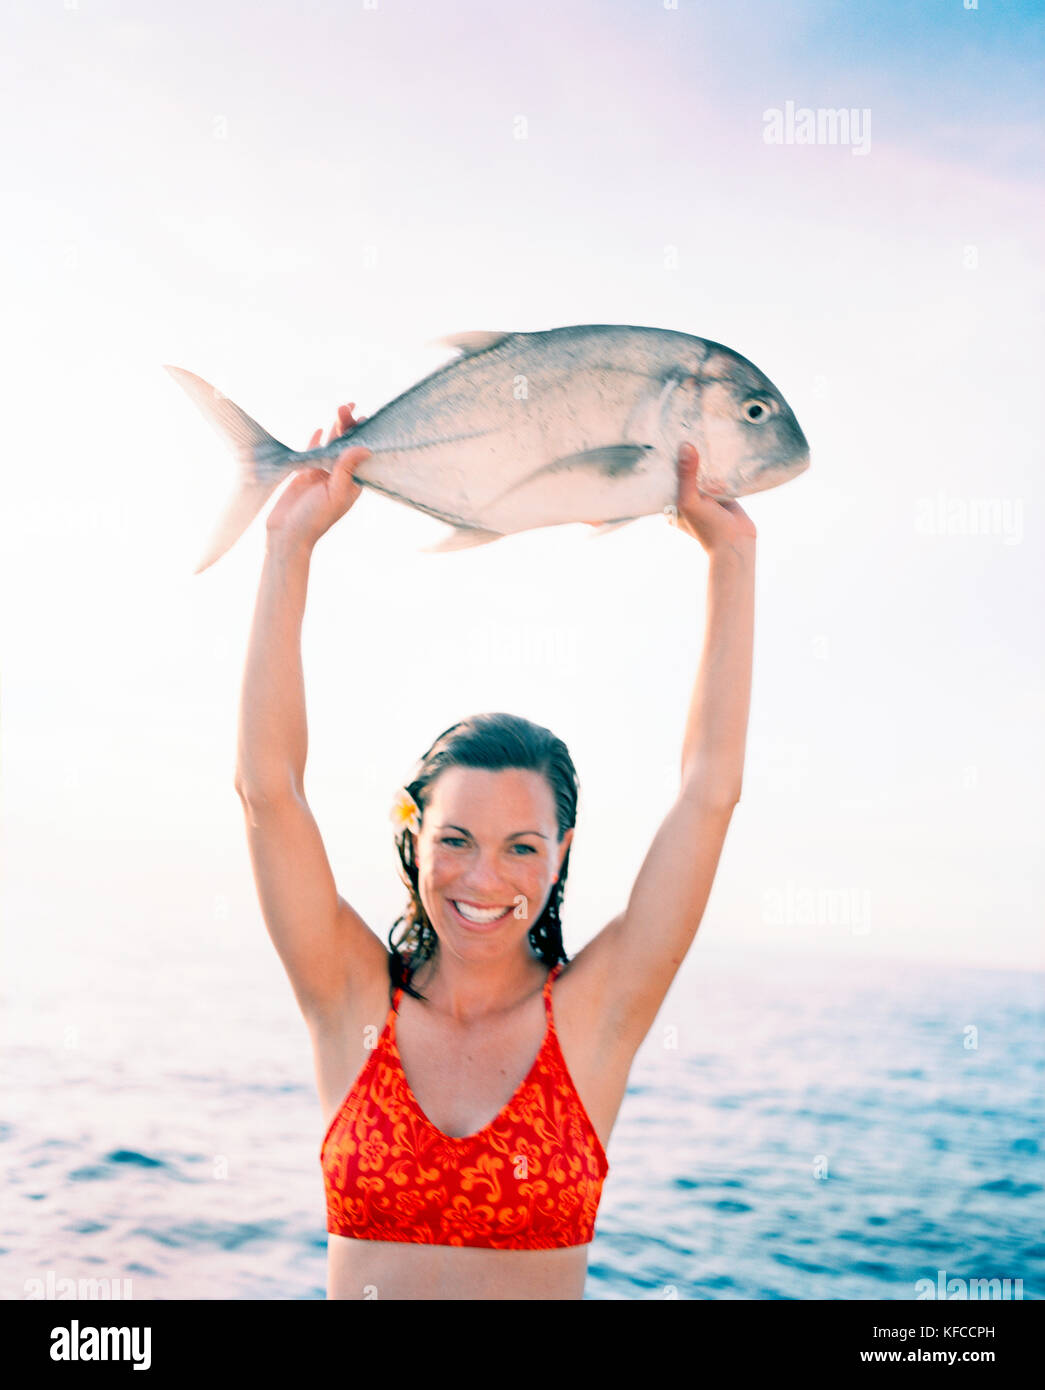 Fiji Northern Lau Islands A Smiling Young Woman Holds Up A Travail Stock Photo Alamy